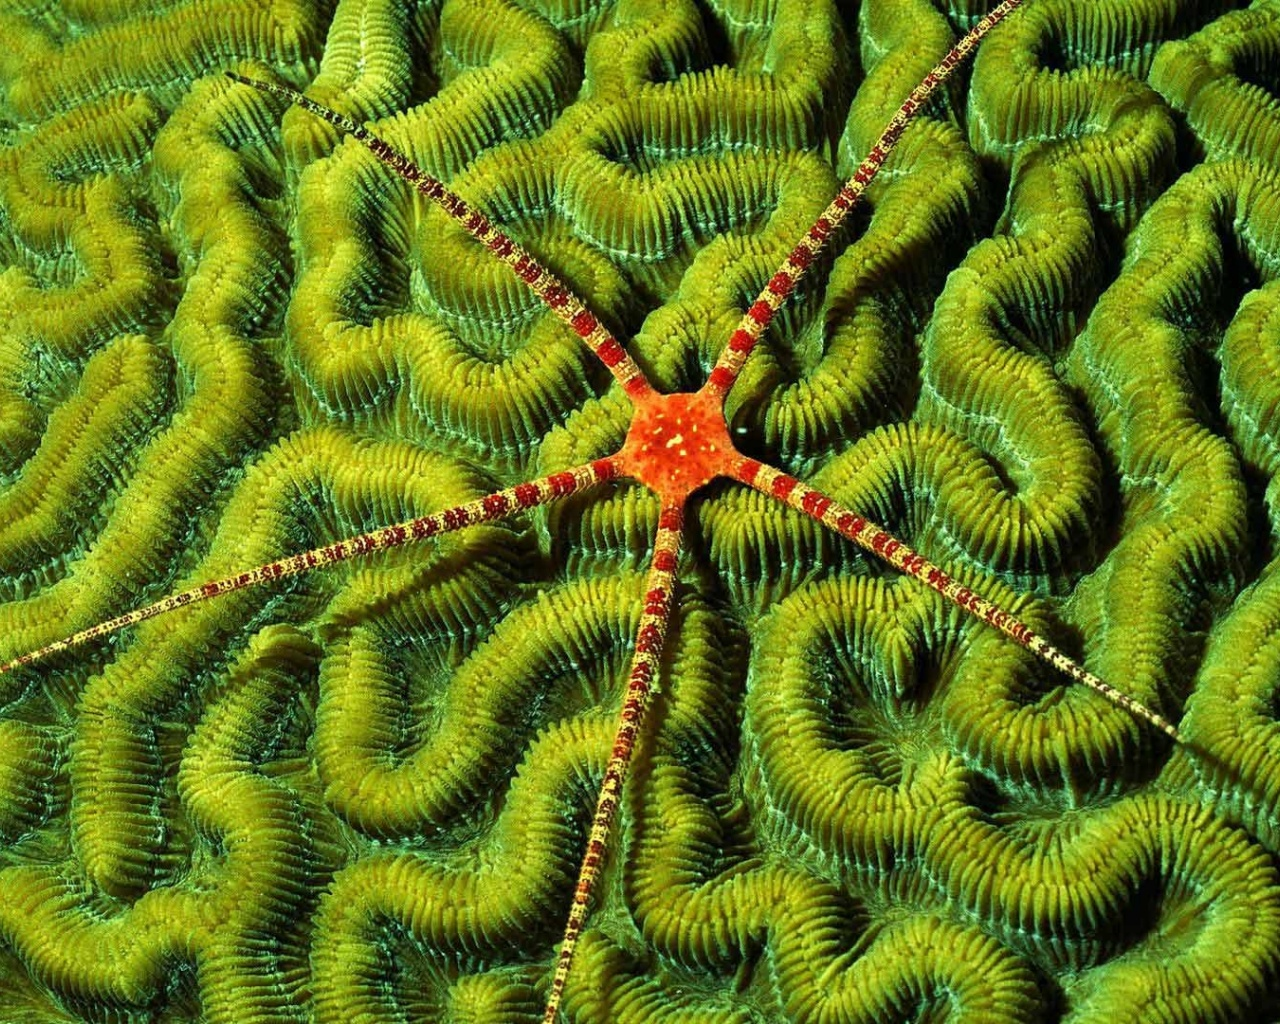 click to free download the wallpaper--Amazing Nature Landscape Images, Sea Star on Green Plants, Meant for Each Other